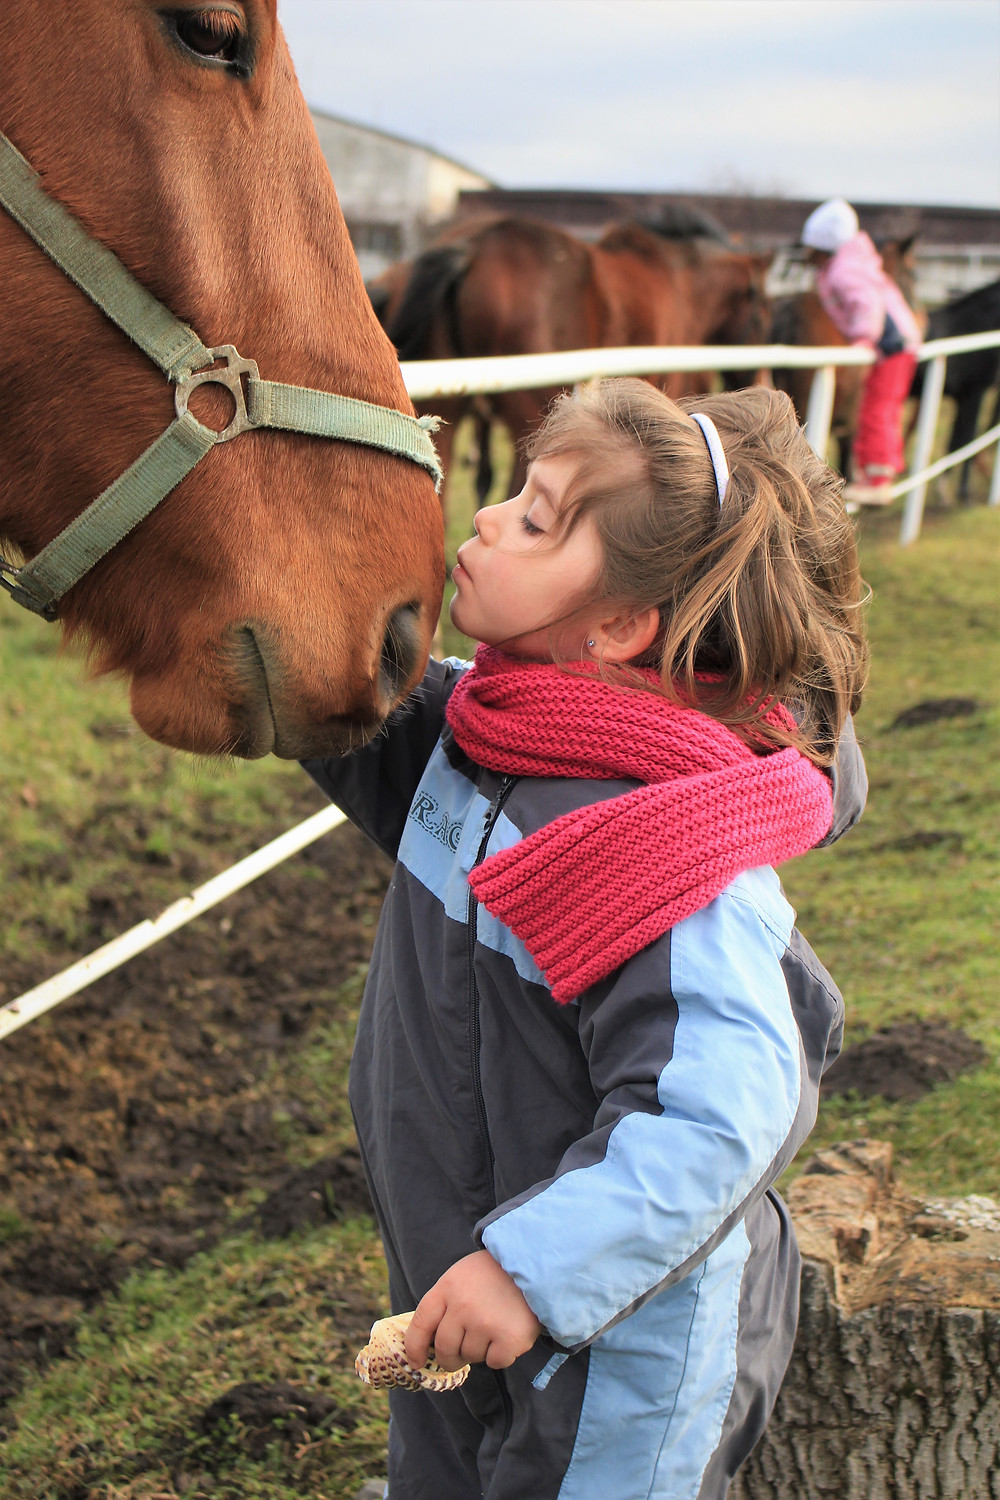 girl kissing horse's nose